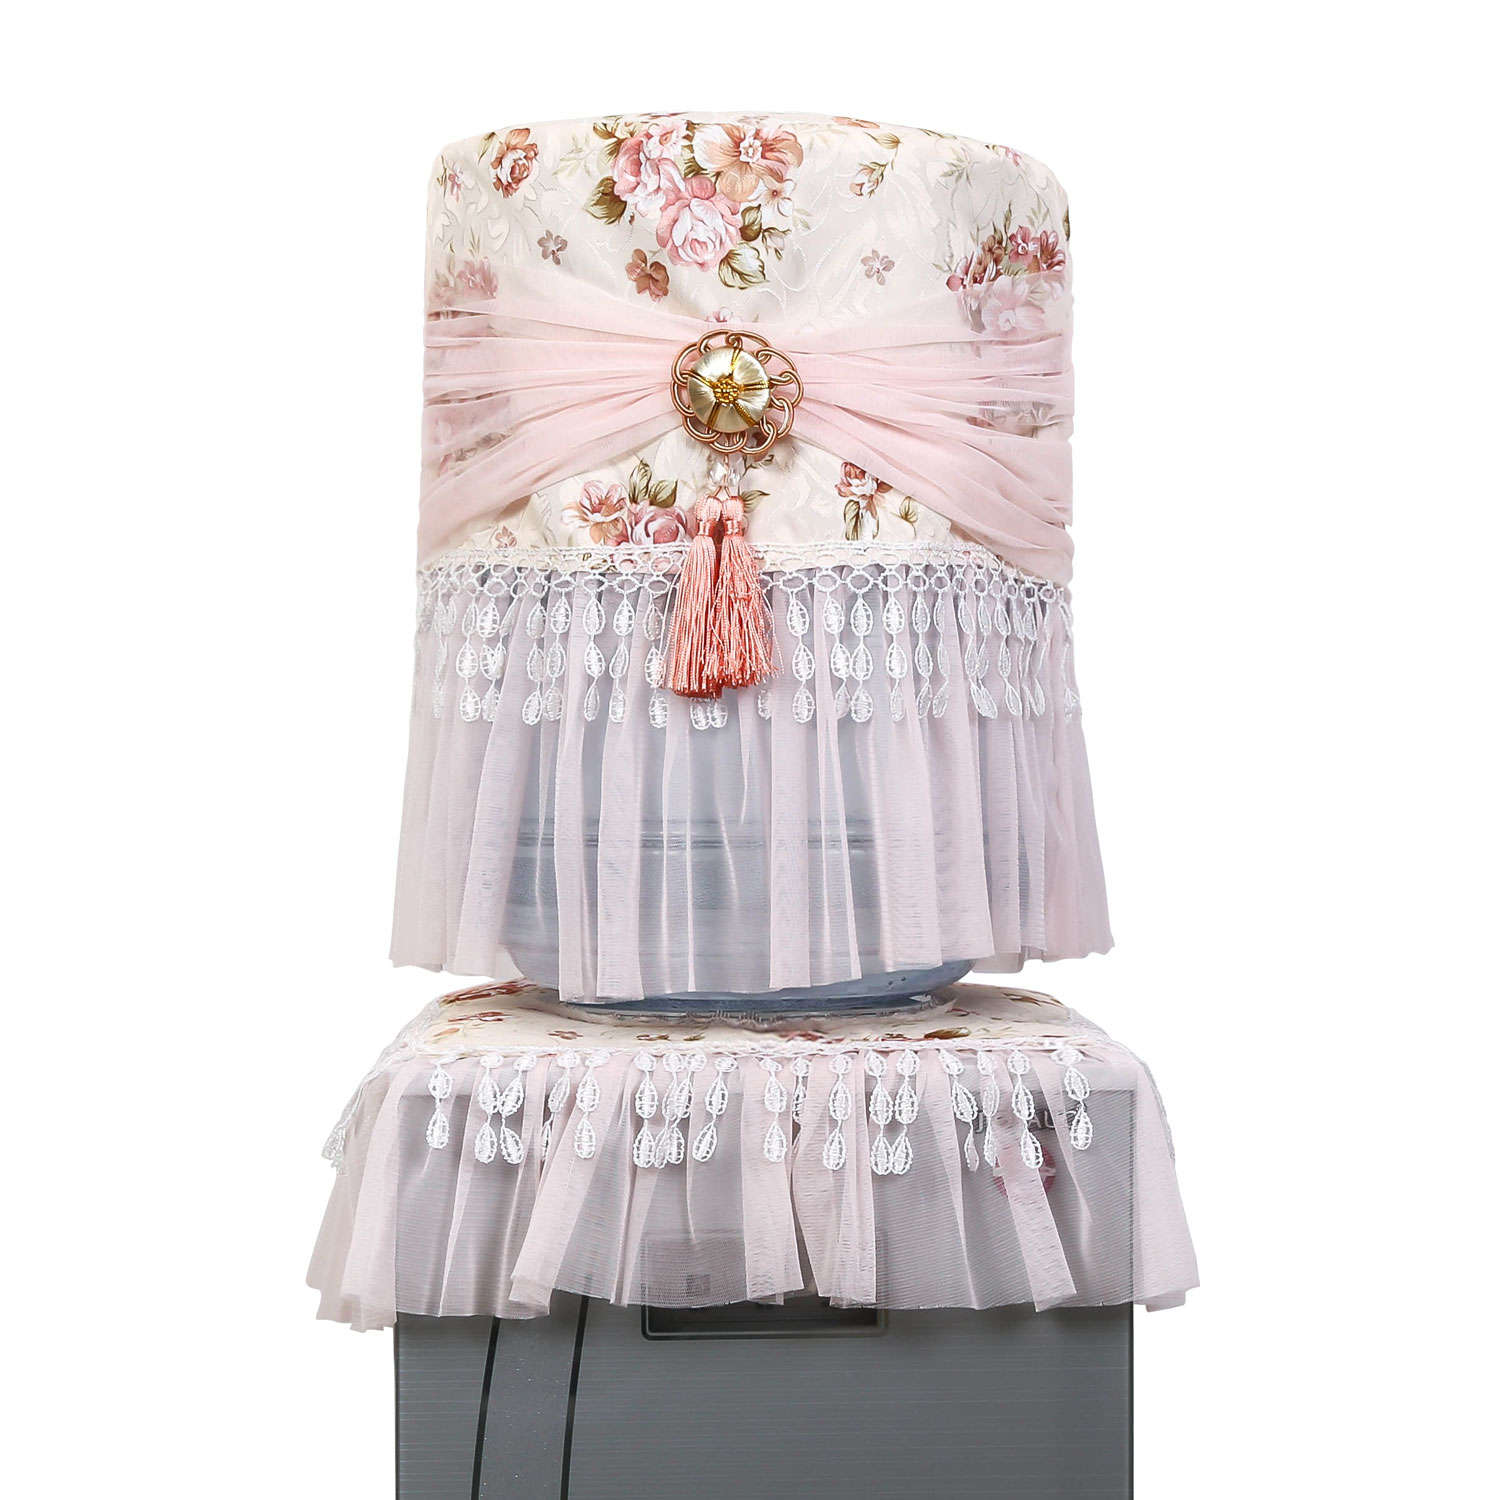 Buy Flowers korean european pastoral lace table cloth tablecloth